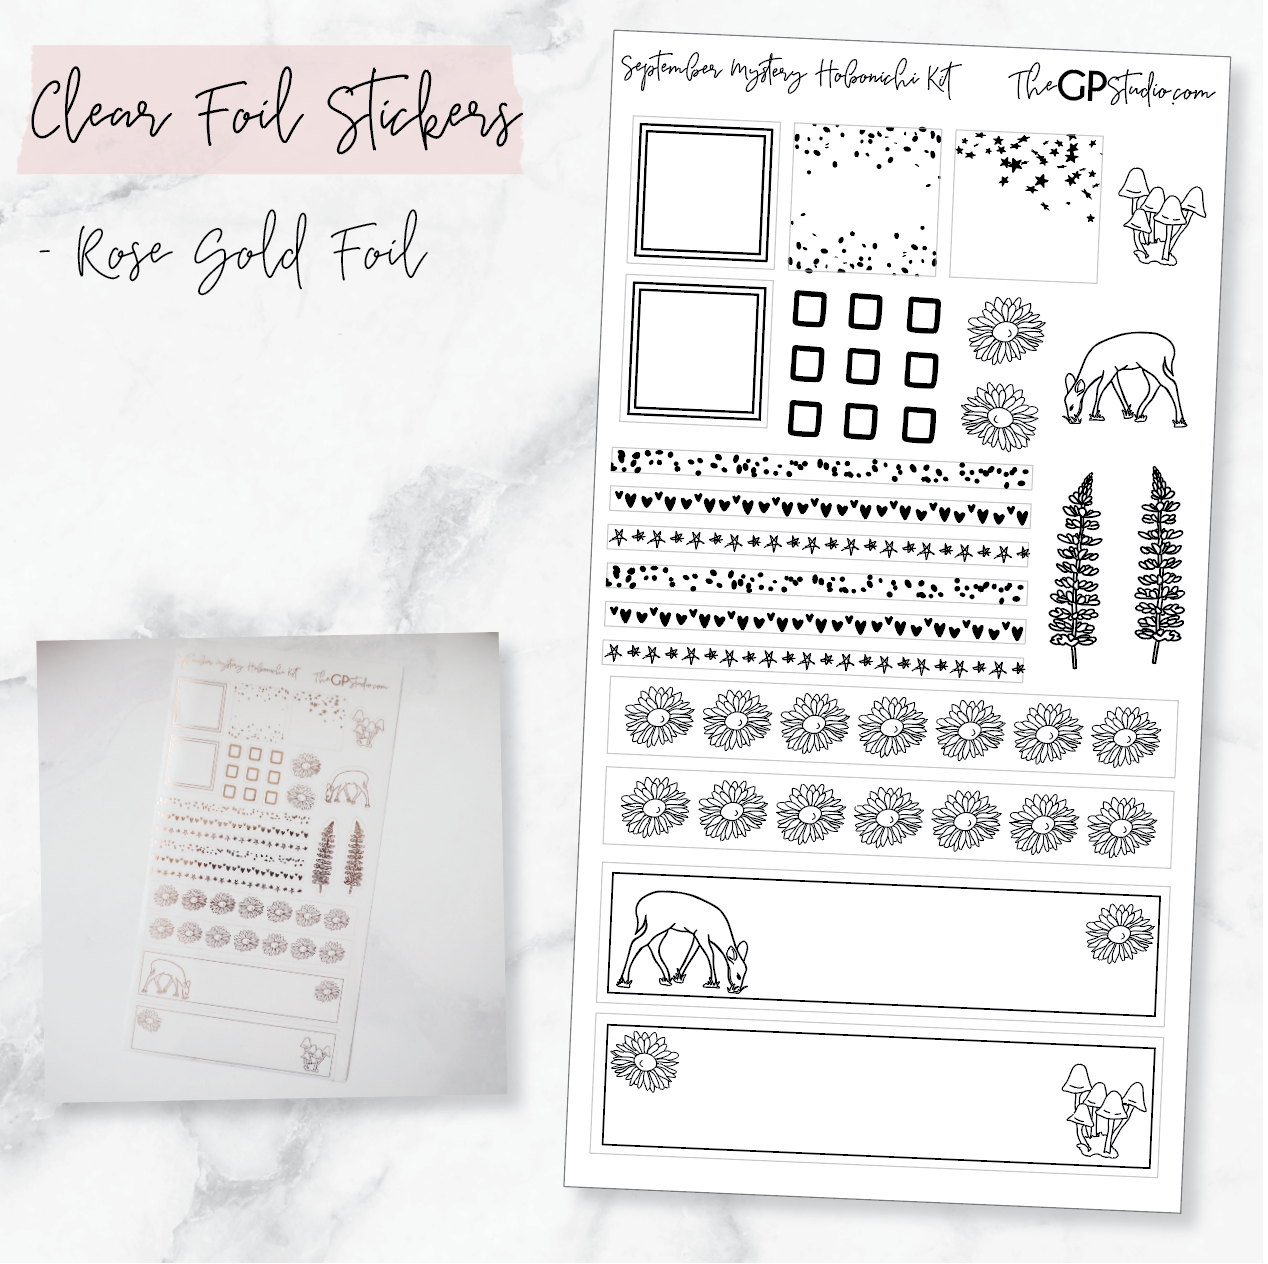 LEFTOVER SEPTEMBER 2019 HOBONICHI WEEKS MYSTERY KIT FOIL SHEET-The GP Studio